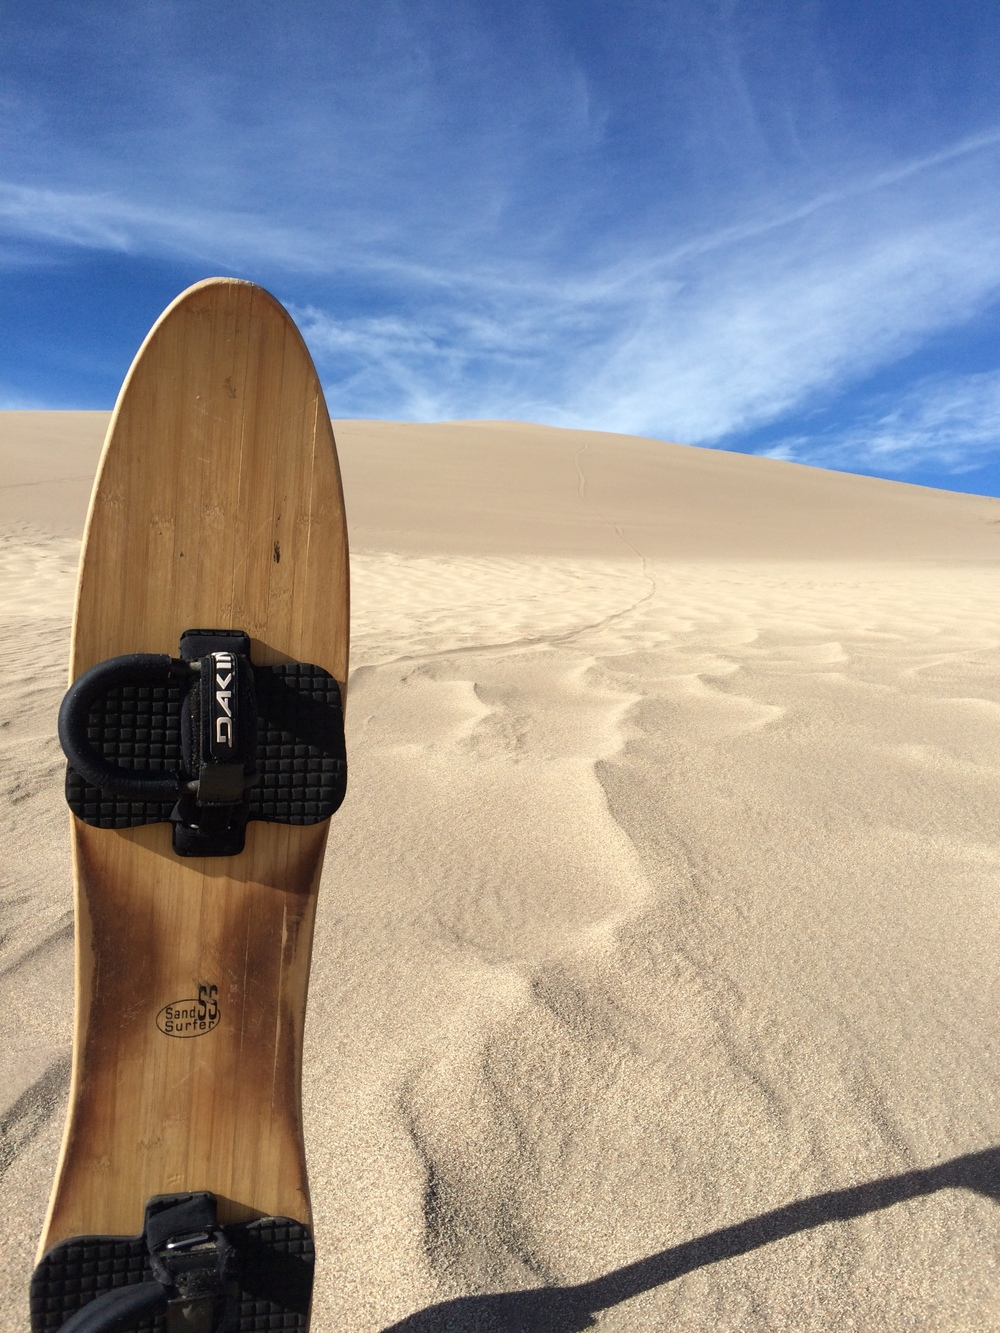 State of the art sand board in its natural environment.